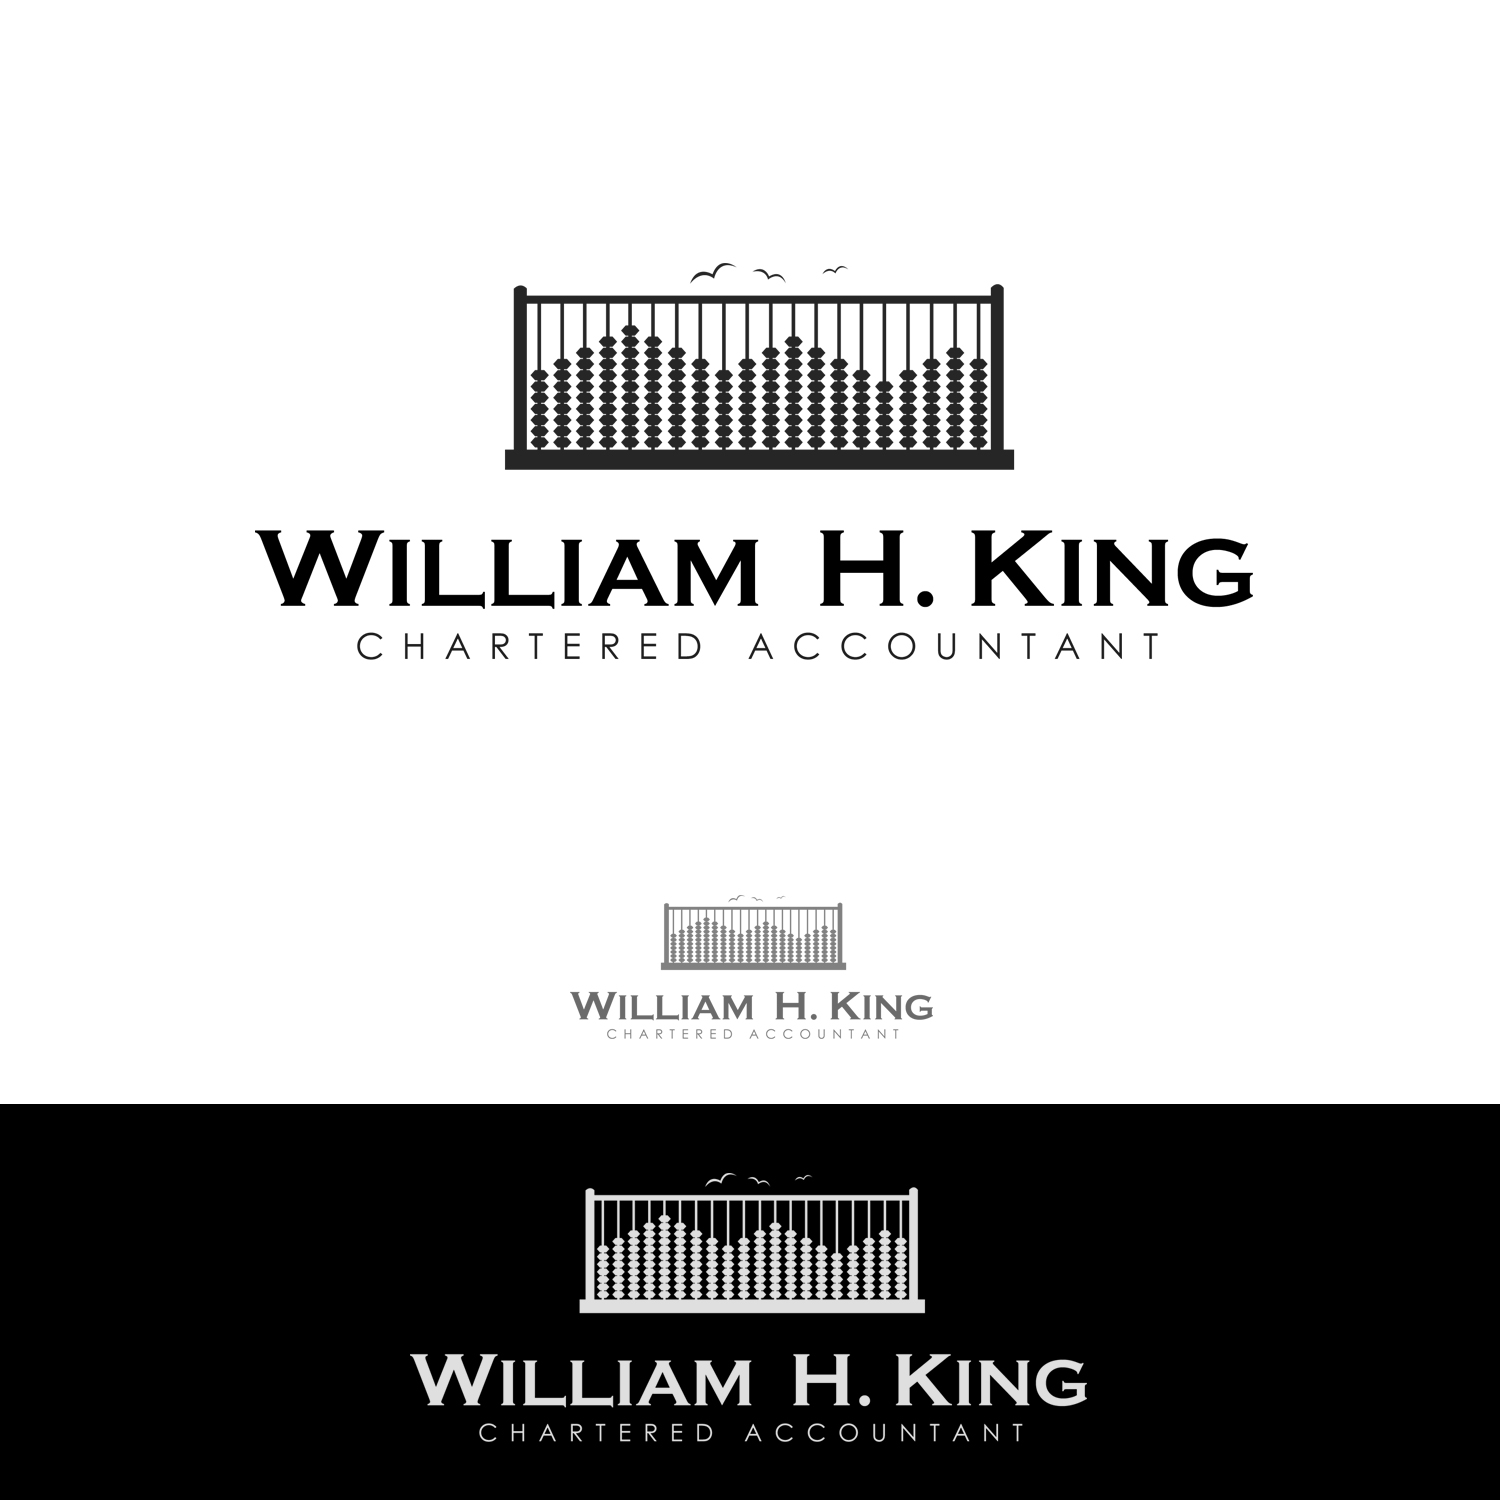 Logo Design by omARTist - Entry No. 197 in the Logo Design Contest New Logo Design for William H. King, Chartered Accountant.